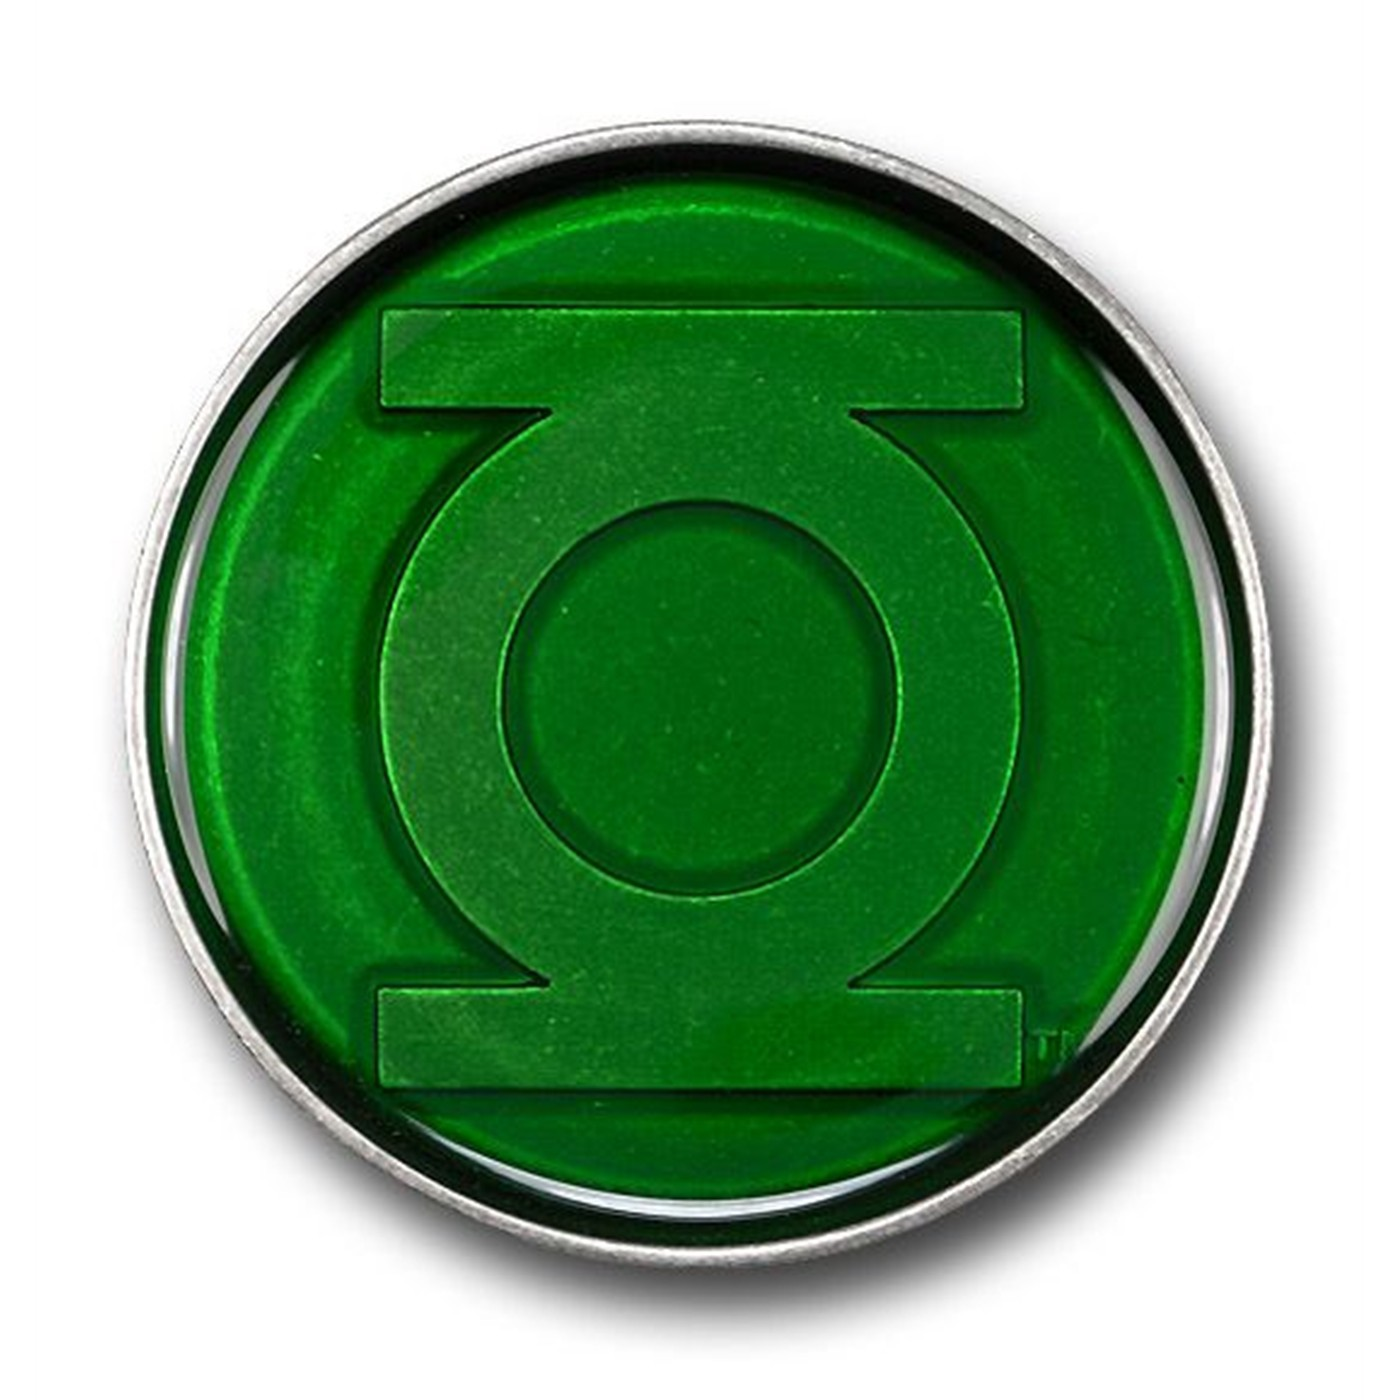 Green Lantern Translucent Green Belt Buckle